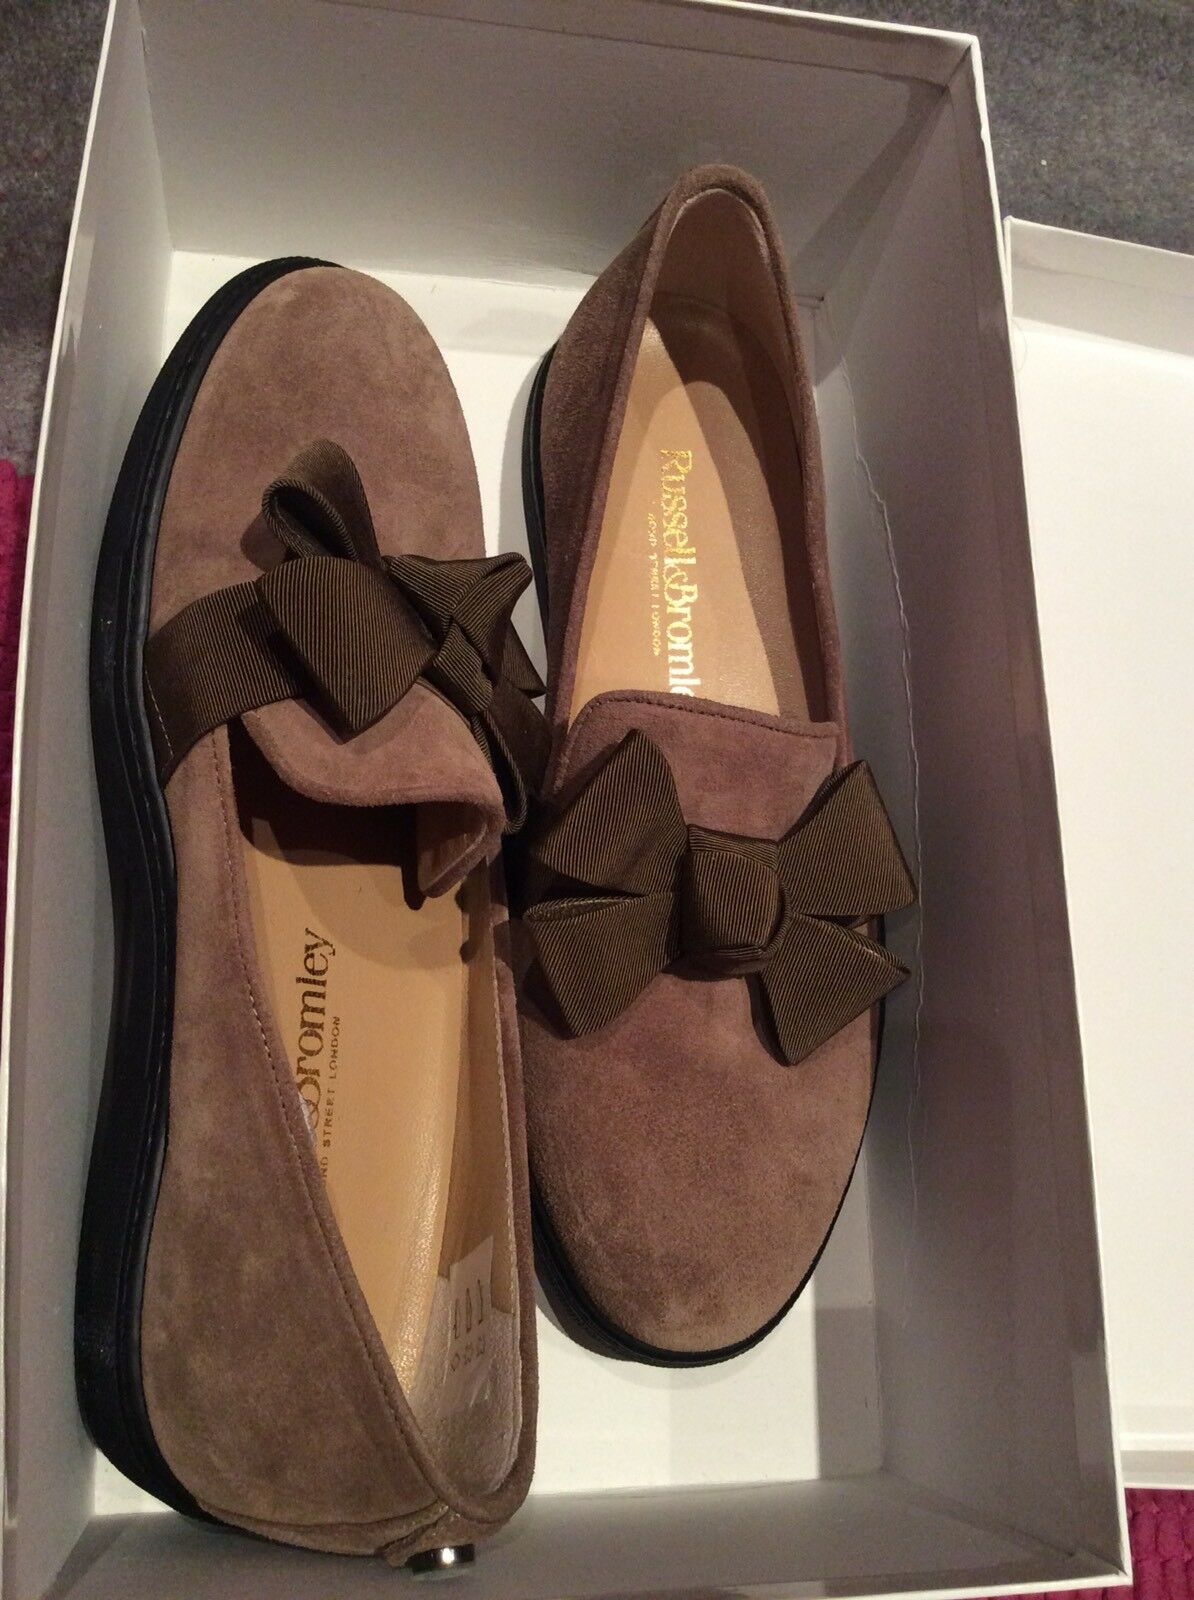 Russell & Bromley - Size 37 - Size 4 - Rrp  - Brown